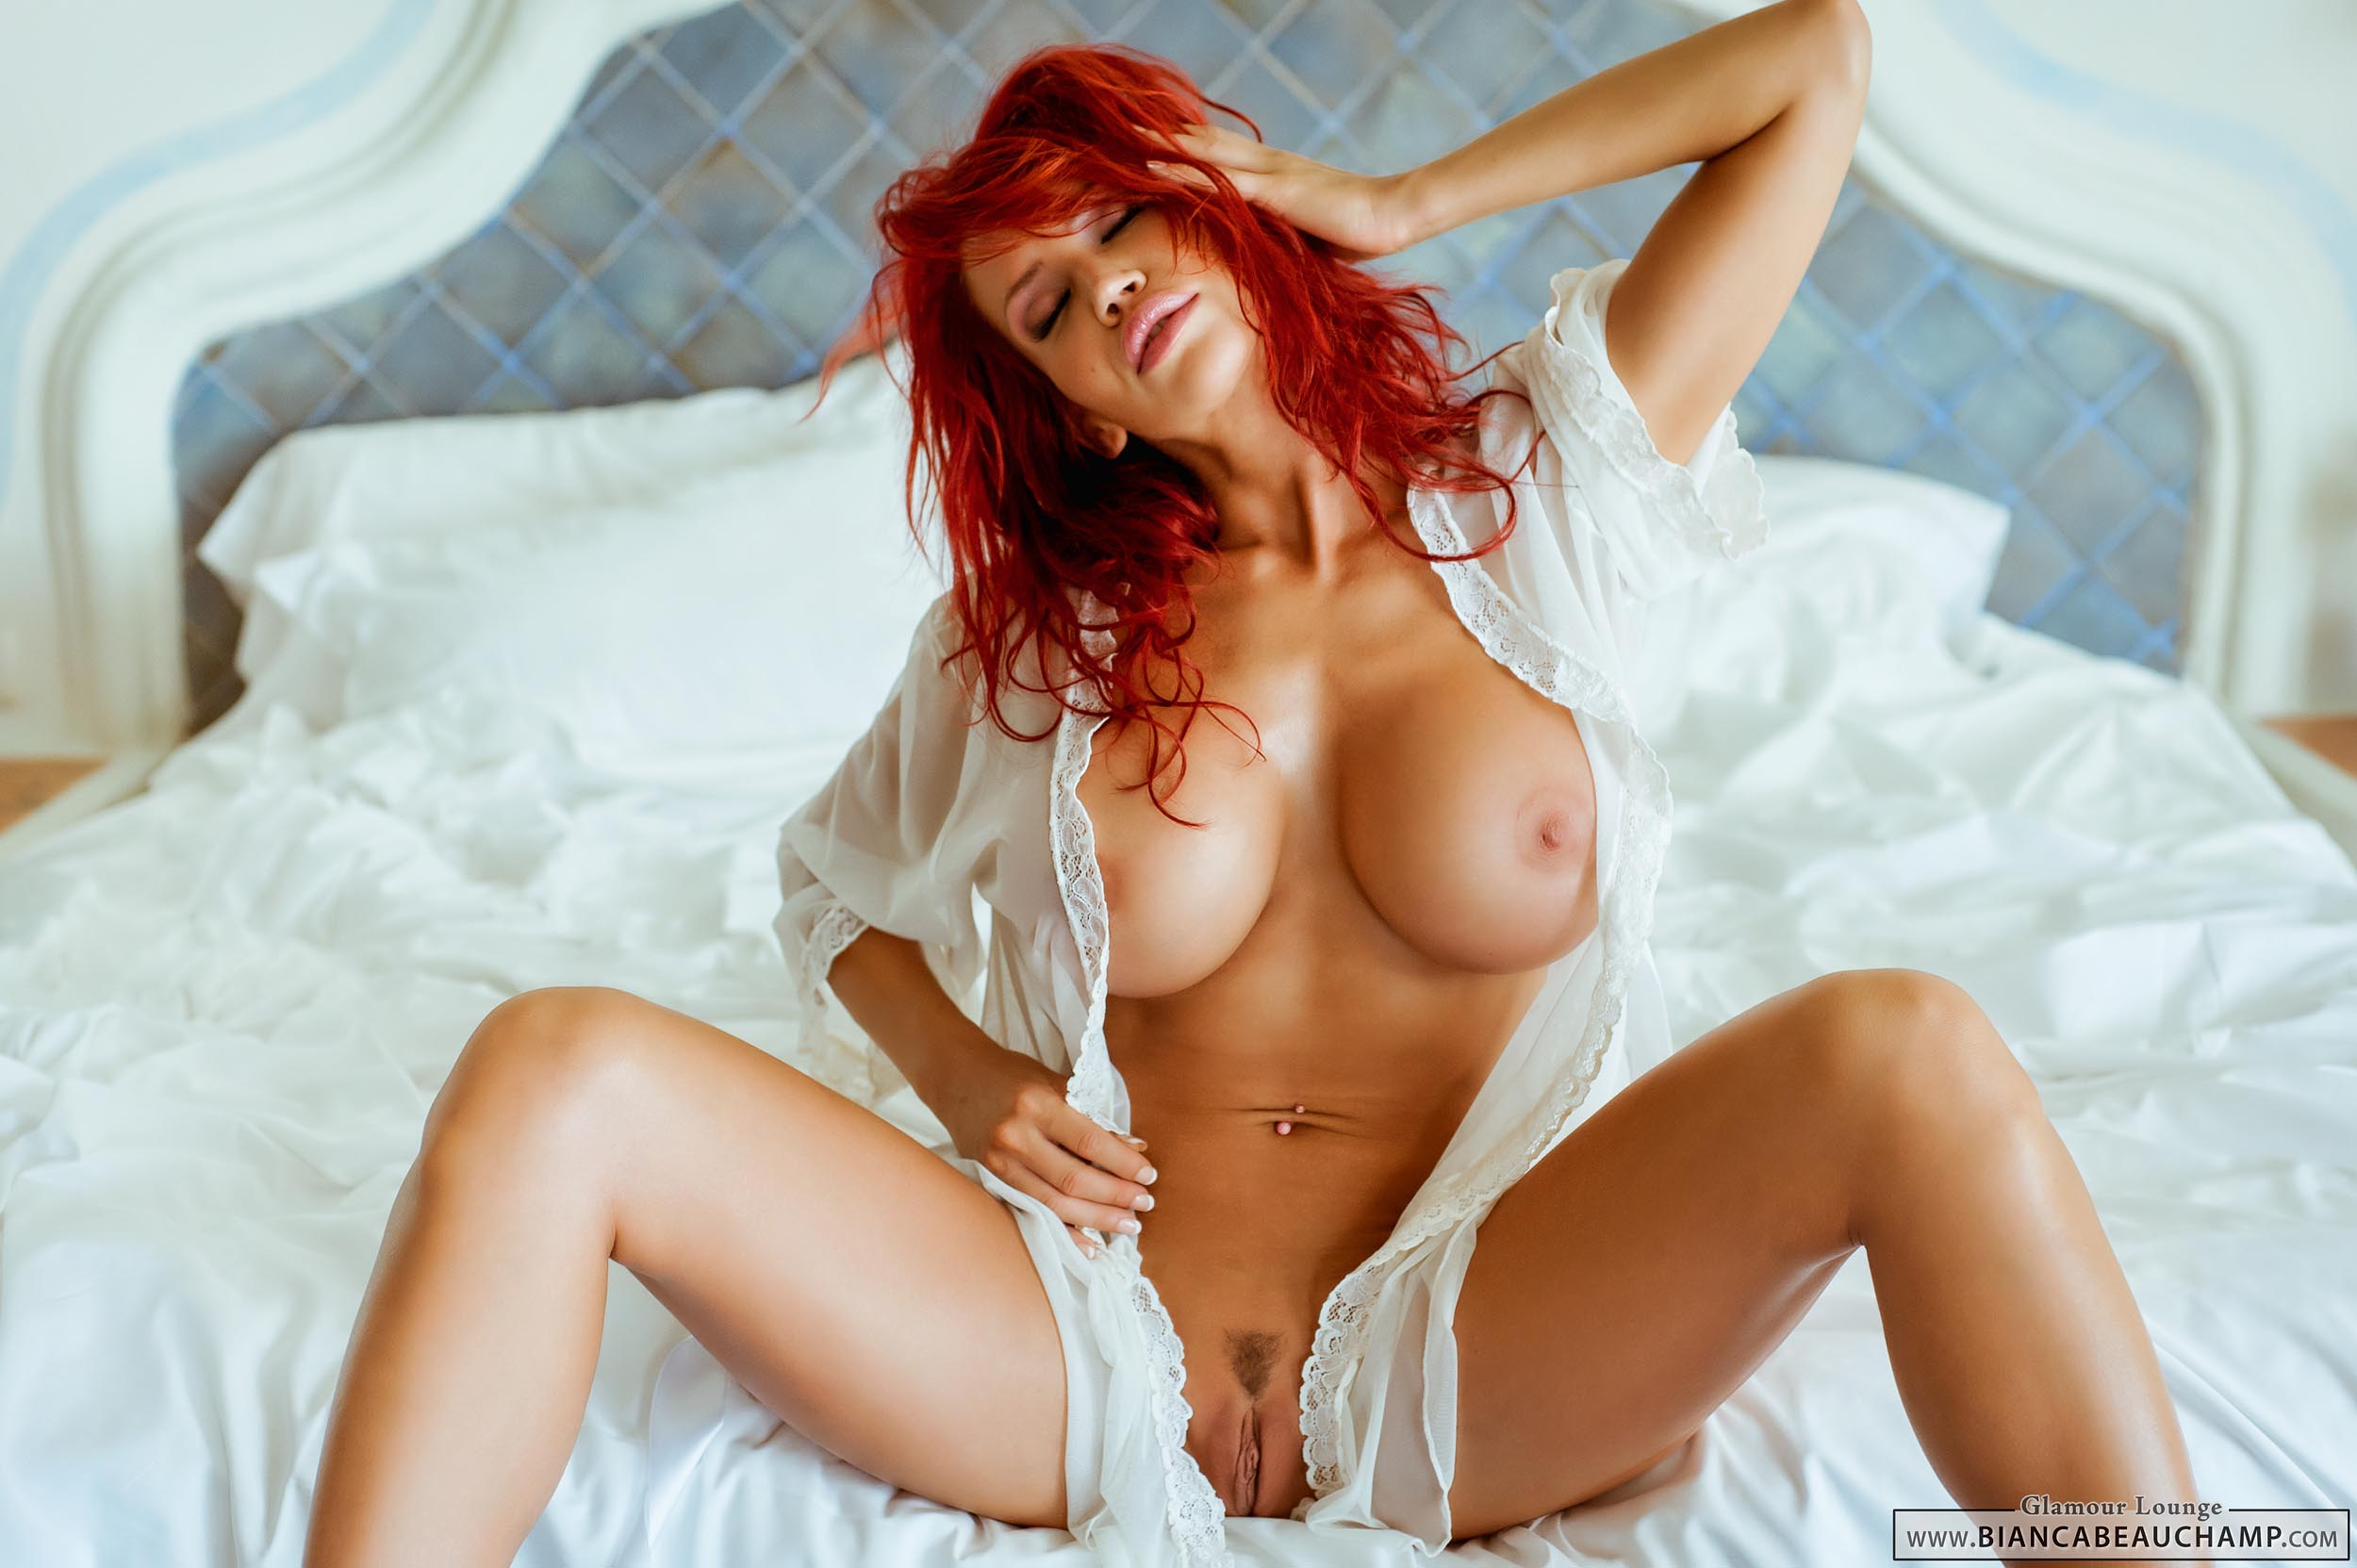 Explain more bianca beauchamp vagina